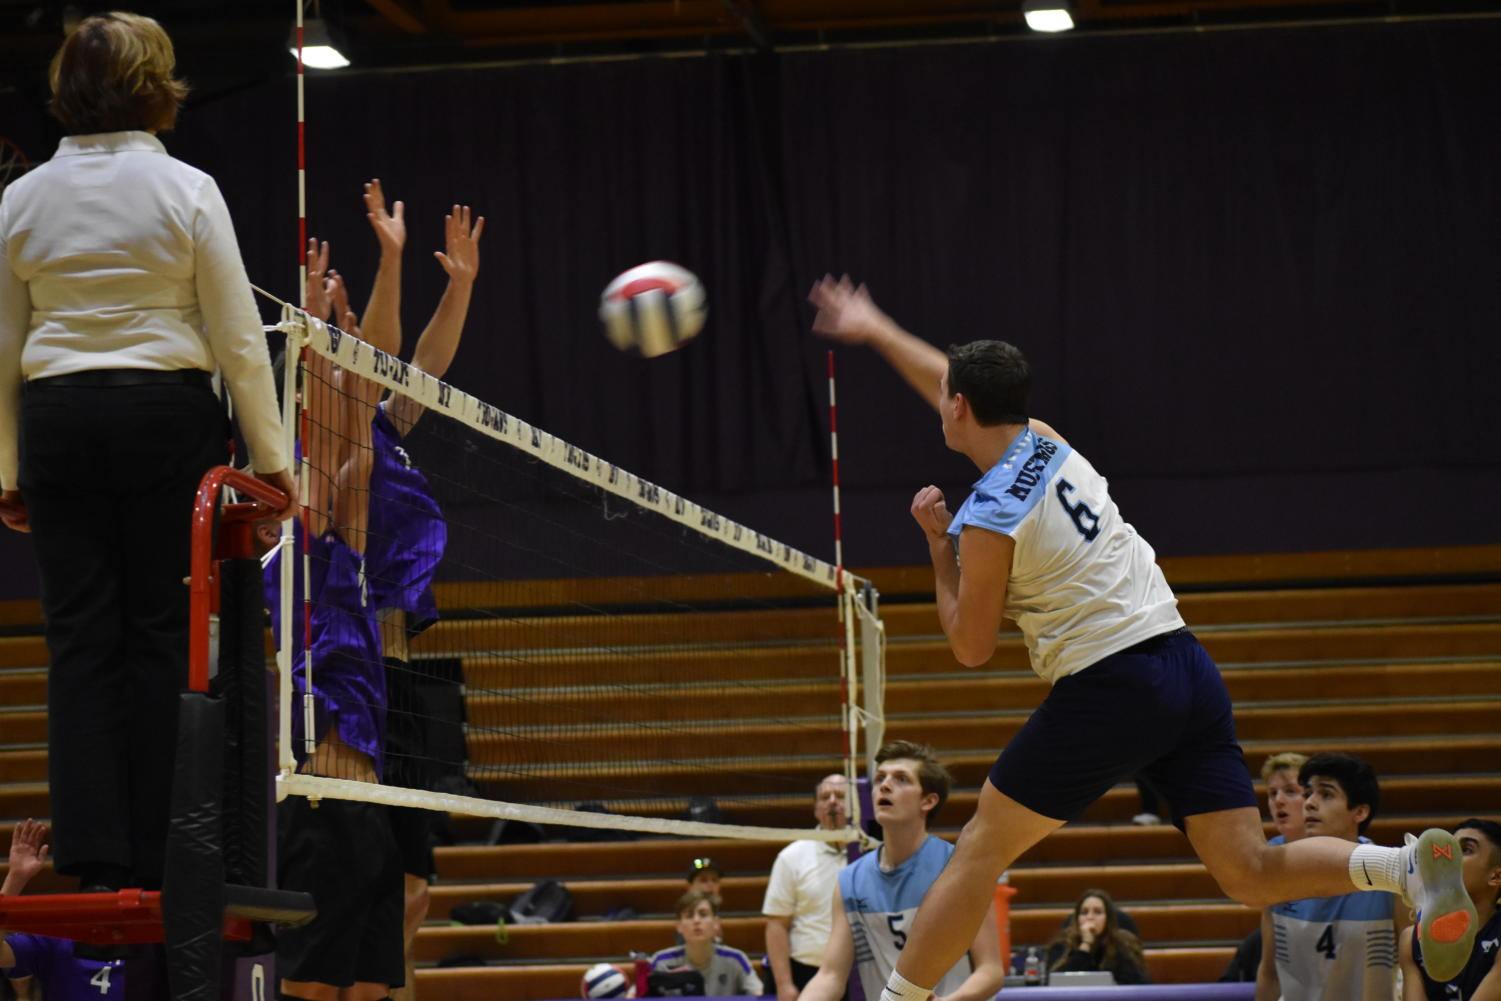 Senior Max Hlavin jumps to spike the ball at the other team.